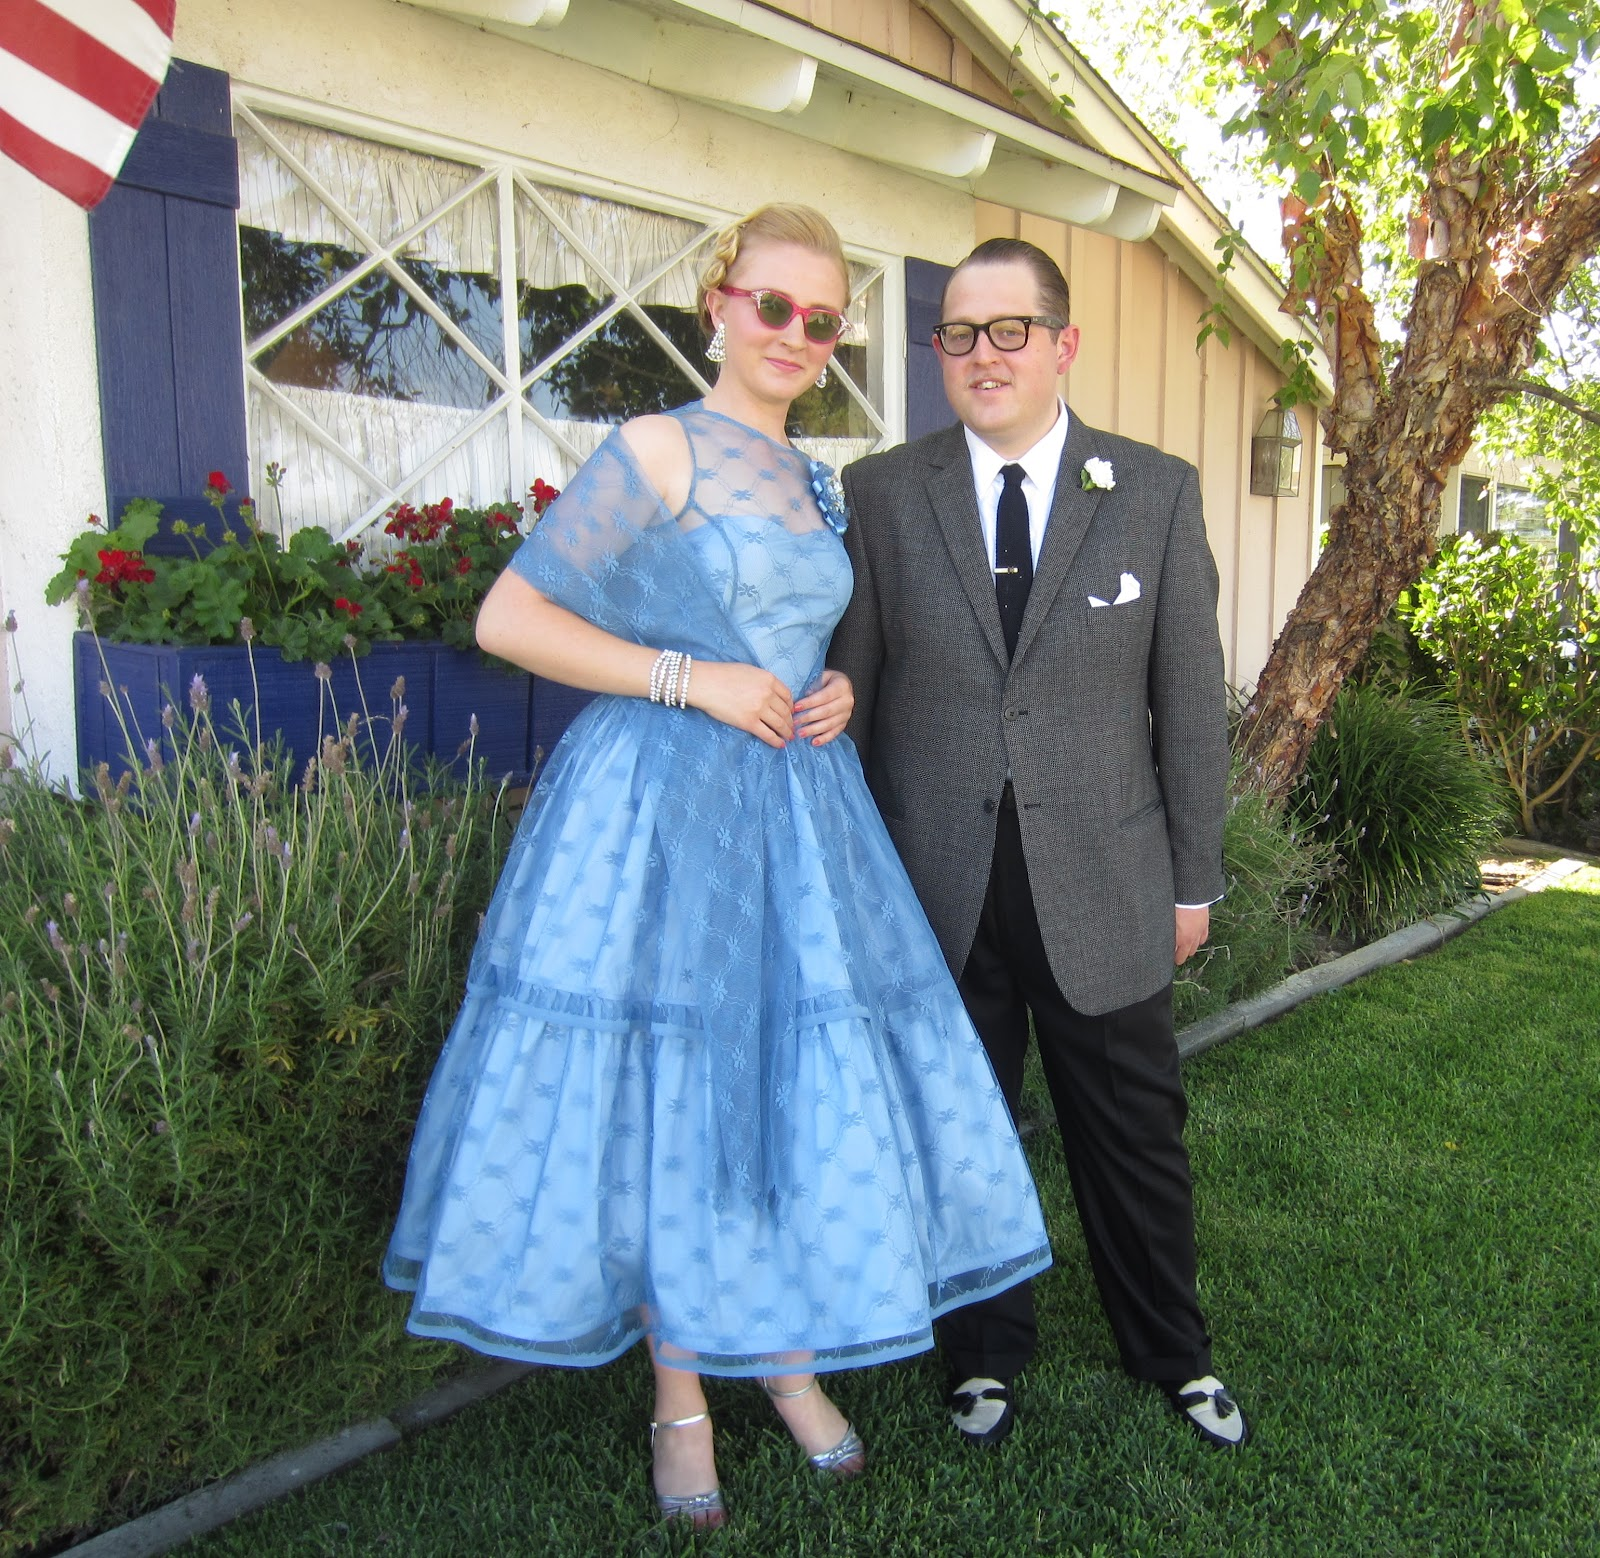 Tacky Weddings: Wacky Tacky: Rockabilly Prom: A Wedding For Zack & Dollie